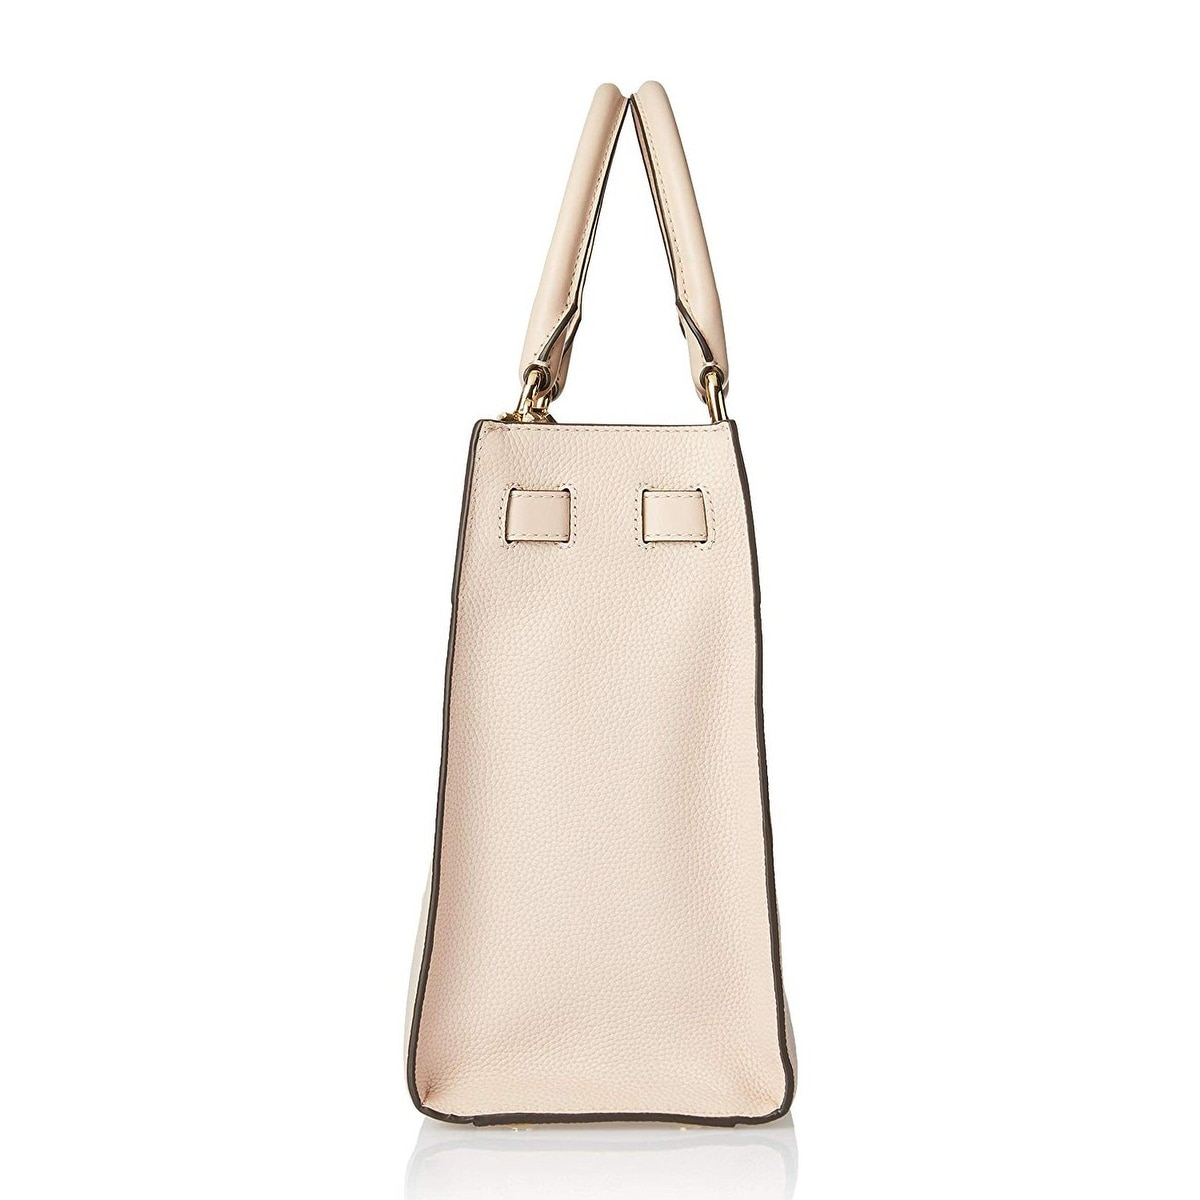 b380b497b22e Shop MICHAEL Michael Kors Reagan Large Leather Satchel Soft Pink Gold -  Free Shipping Today - Overstock - 27296234